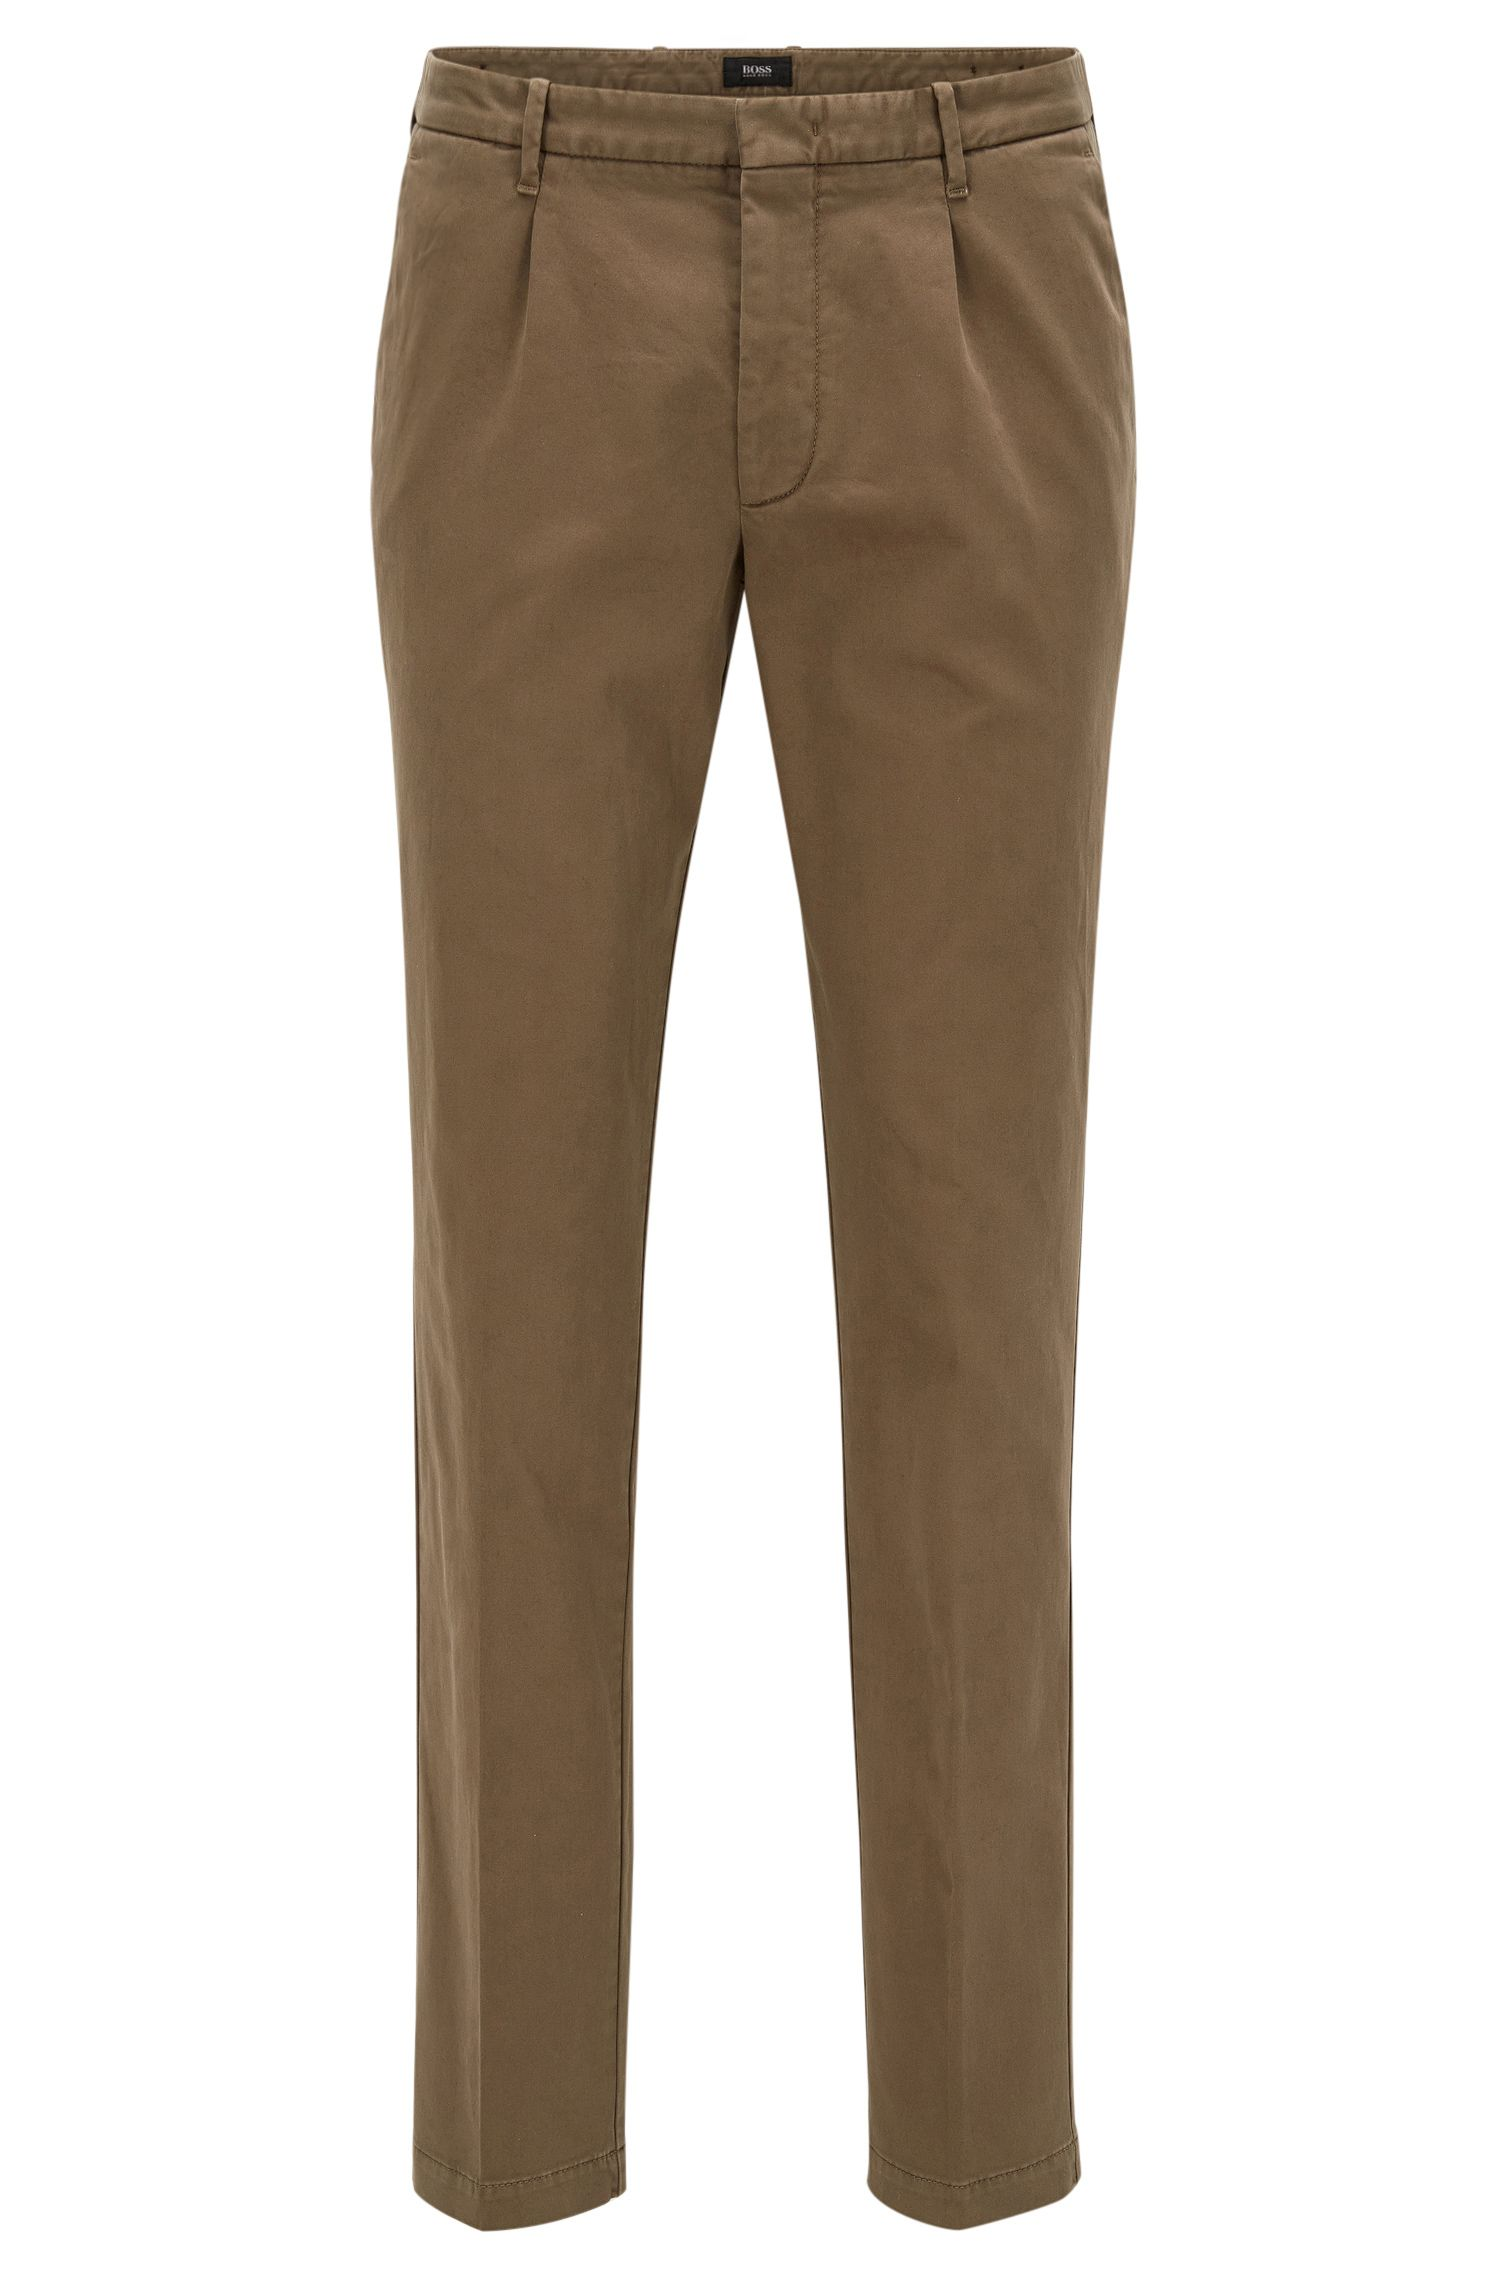 Slim-fit pleated chinos in Italian cotton blend